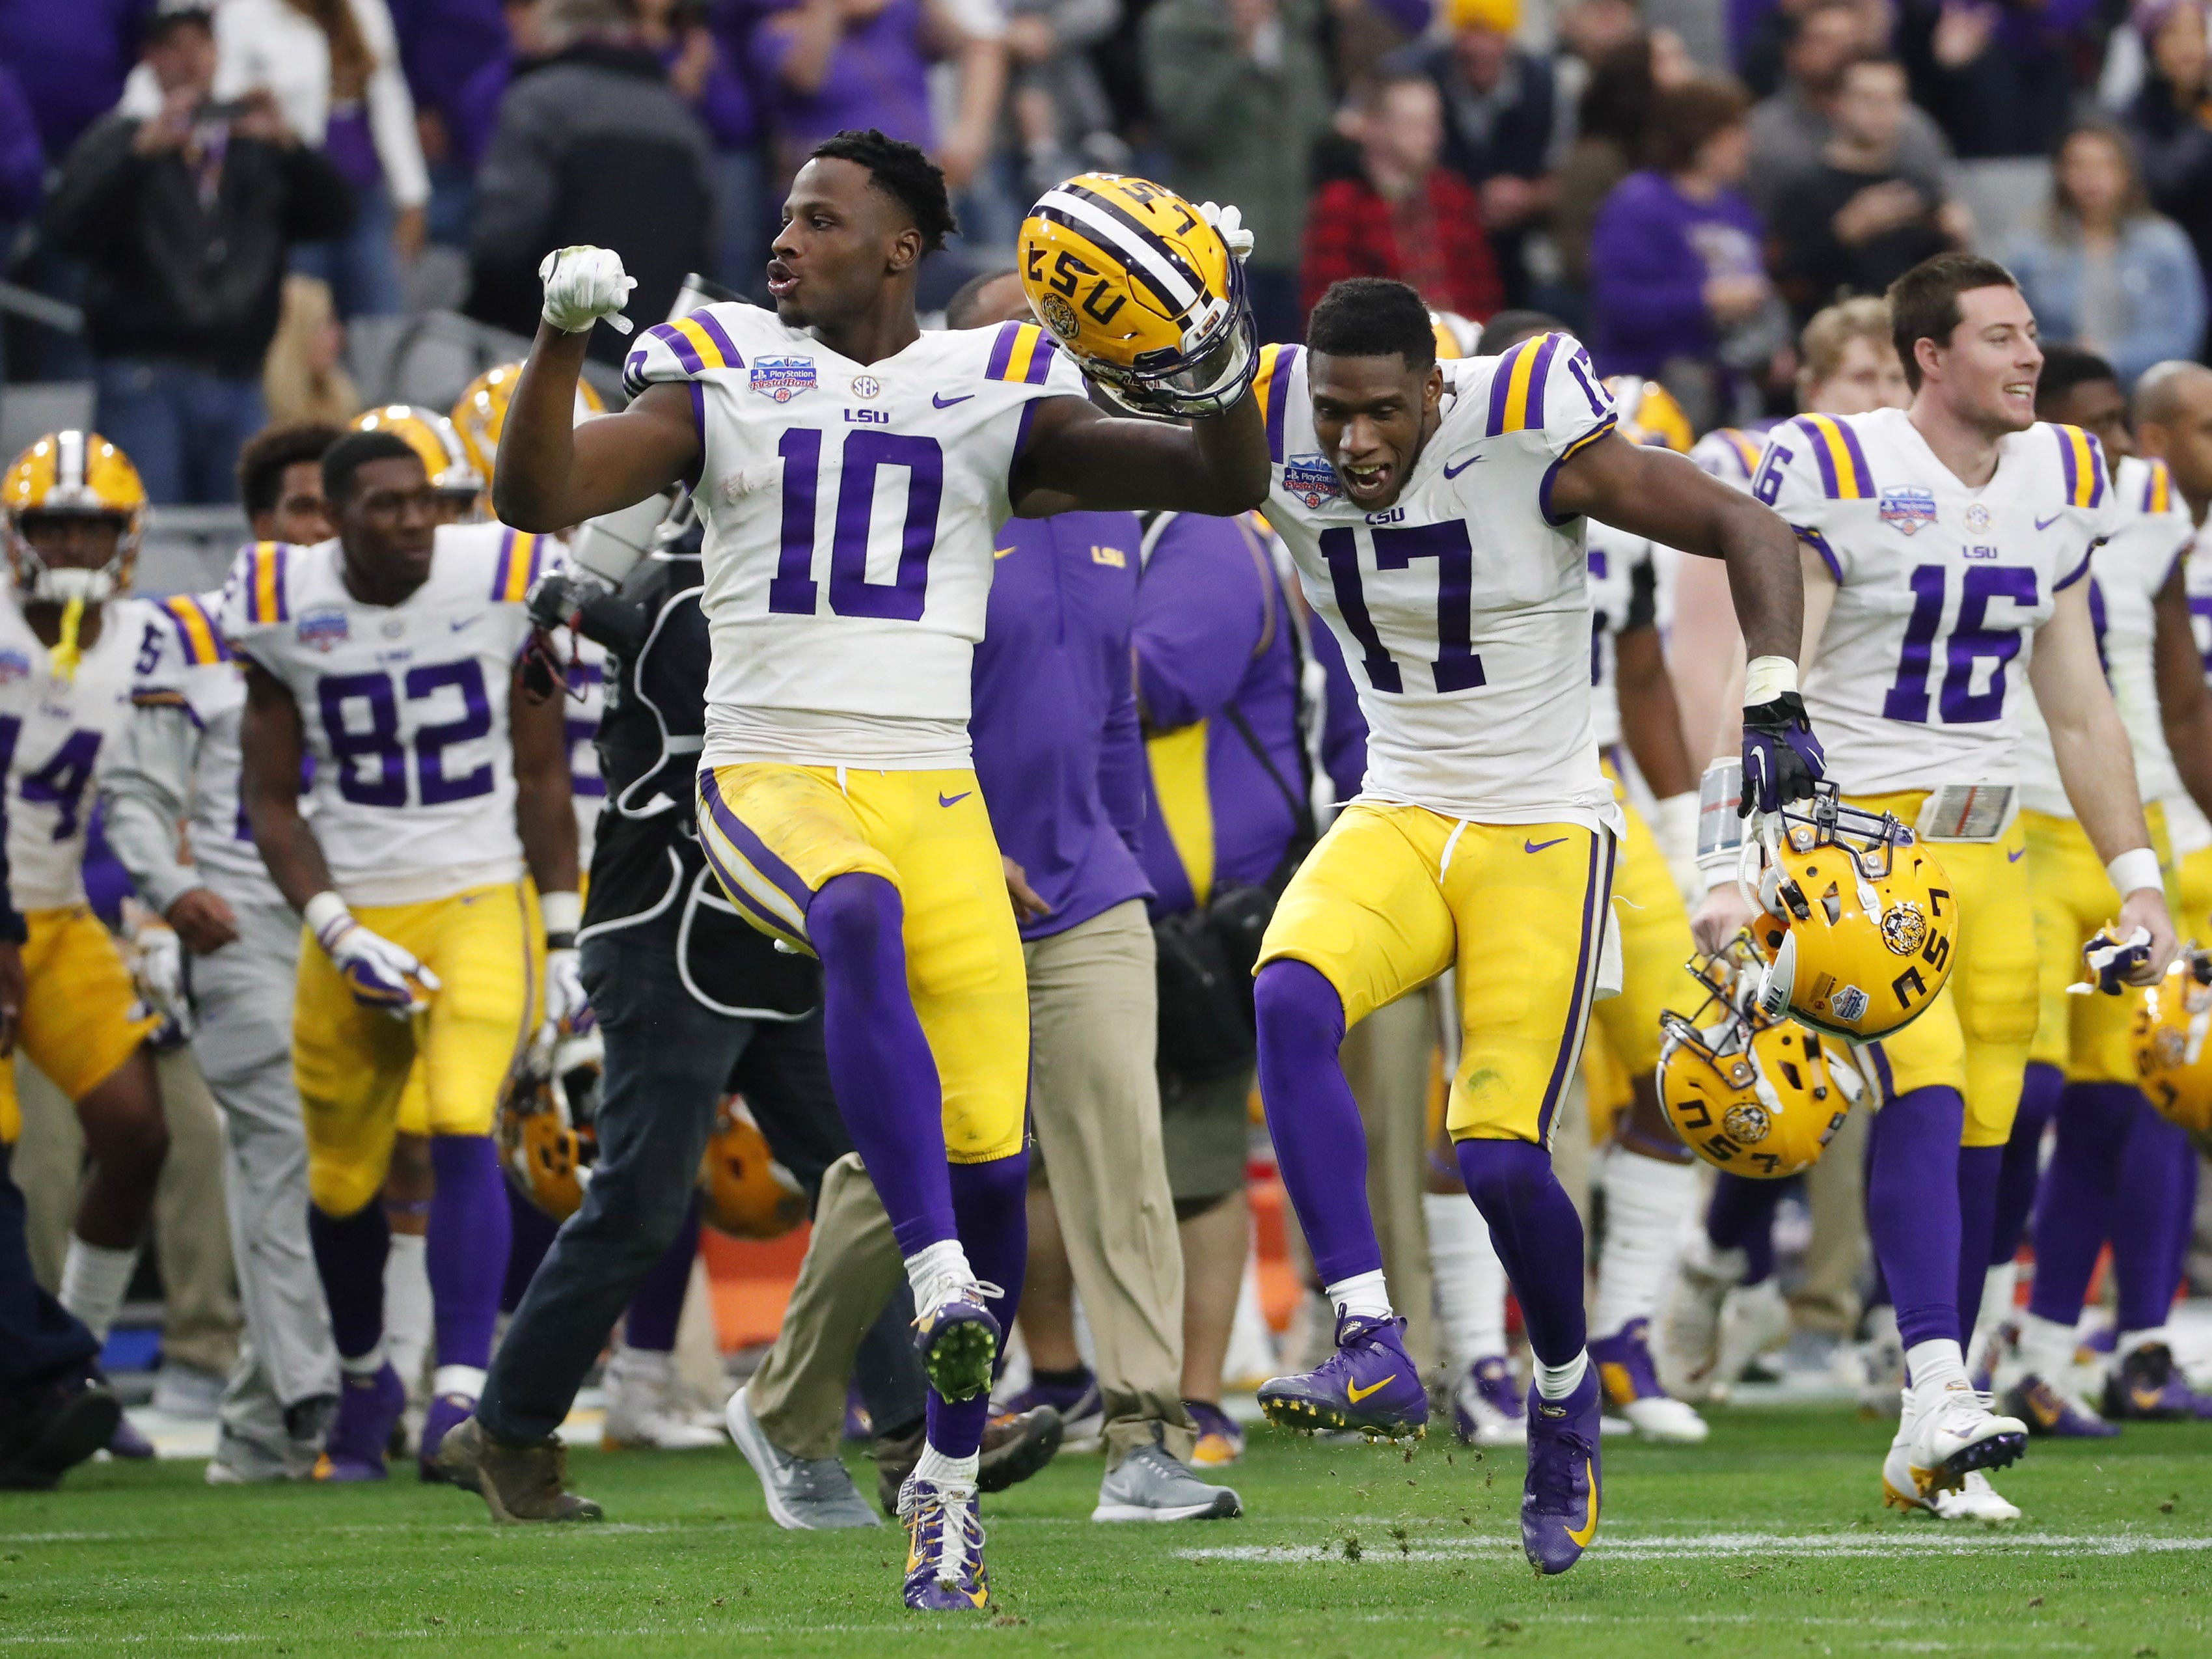 LSU wide receivers Stephen Sullivan (10) and Racey McMath (17) celebrate after winning the Fiesta Bowl in Glendale January 1, 2019. LSU won 40-32.